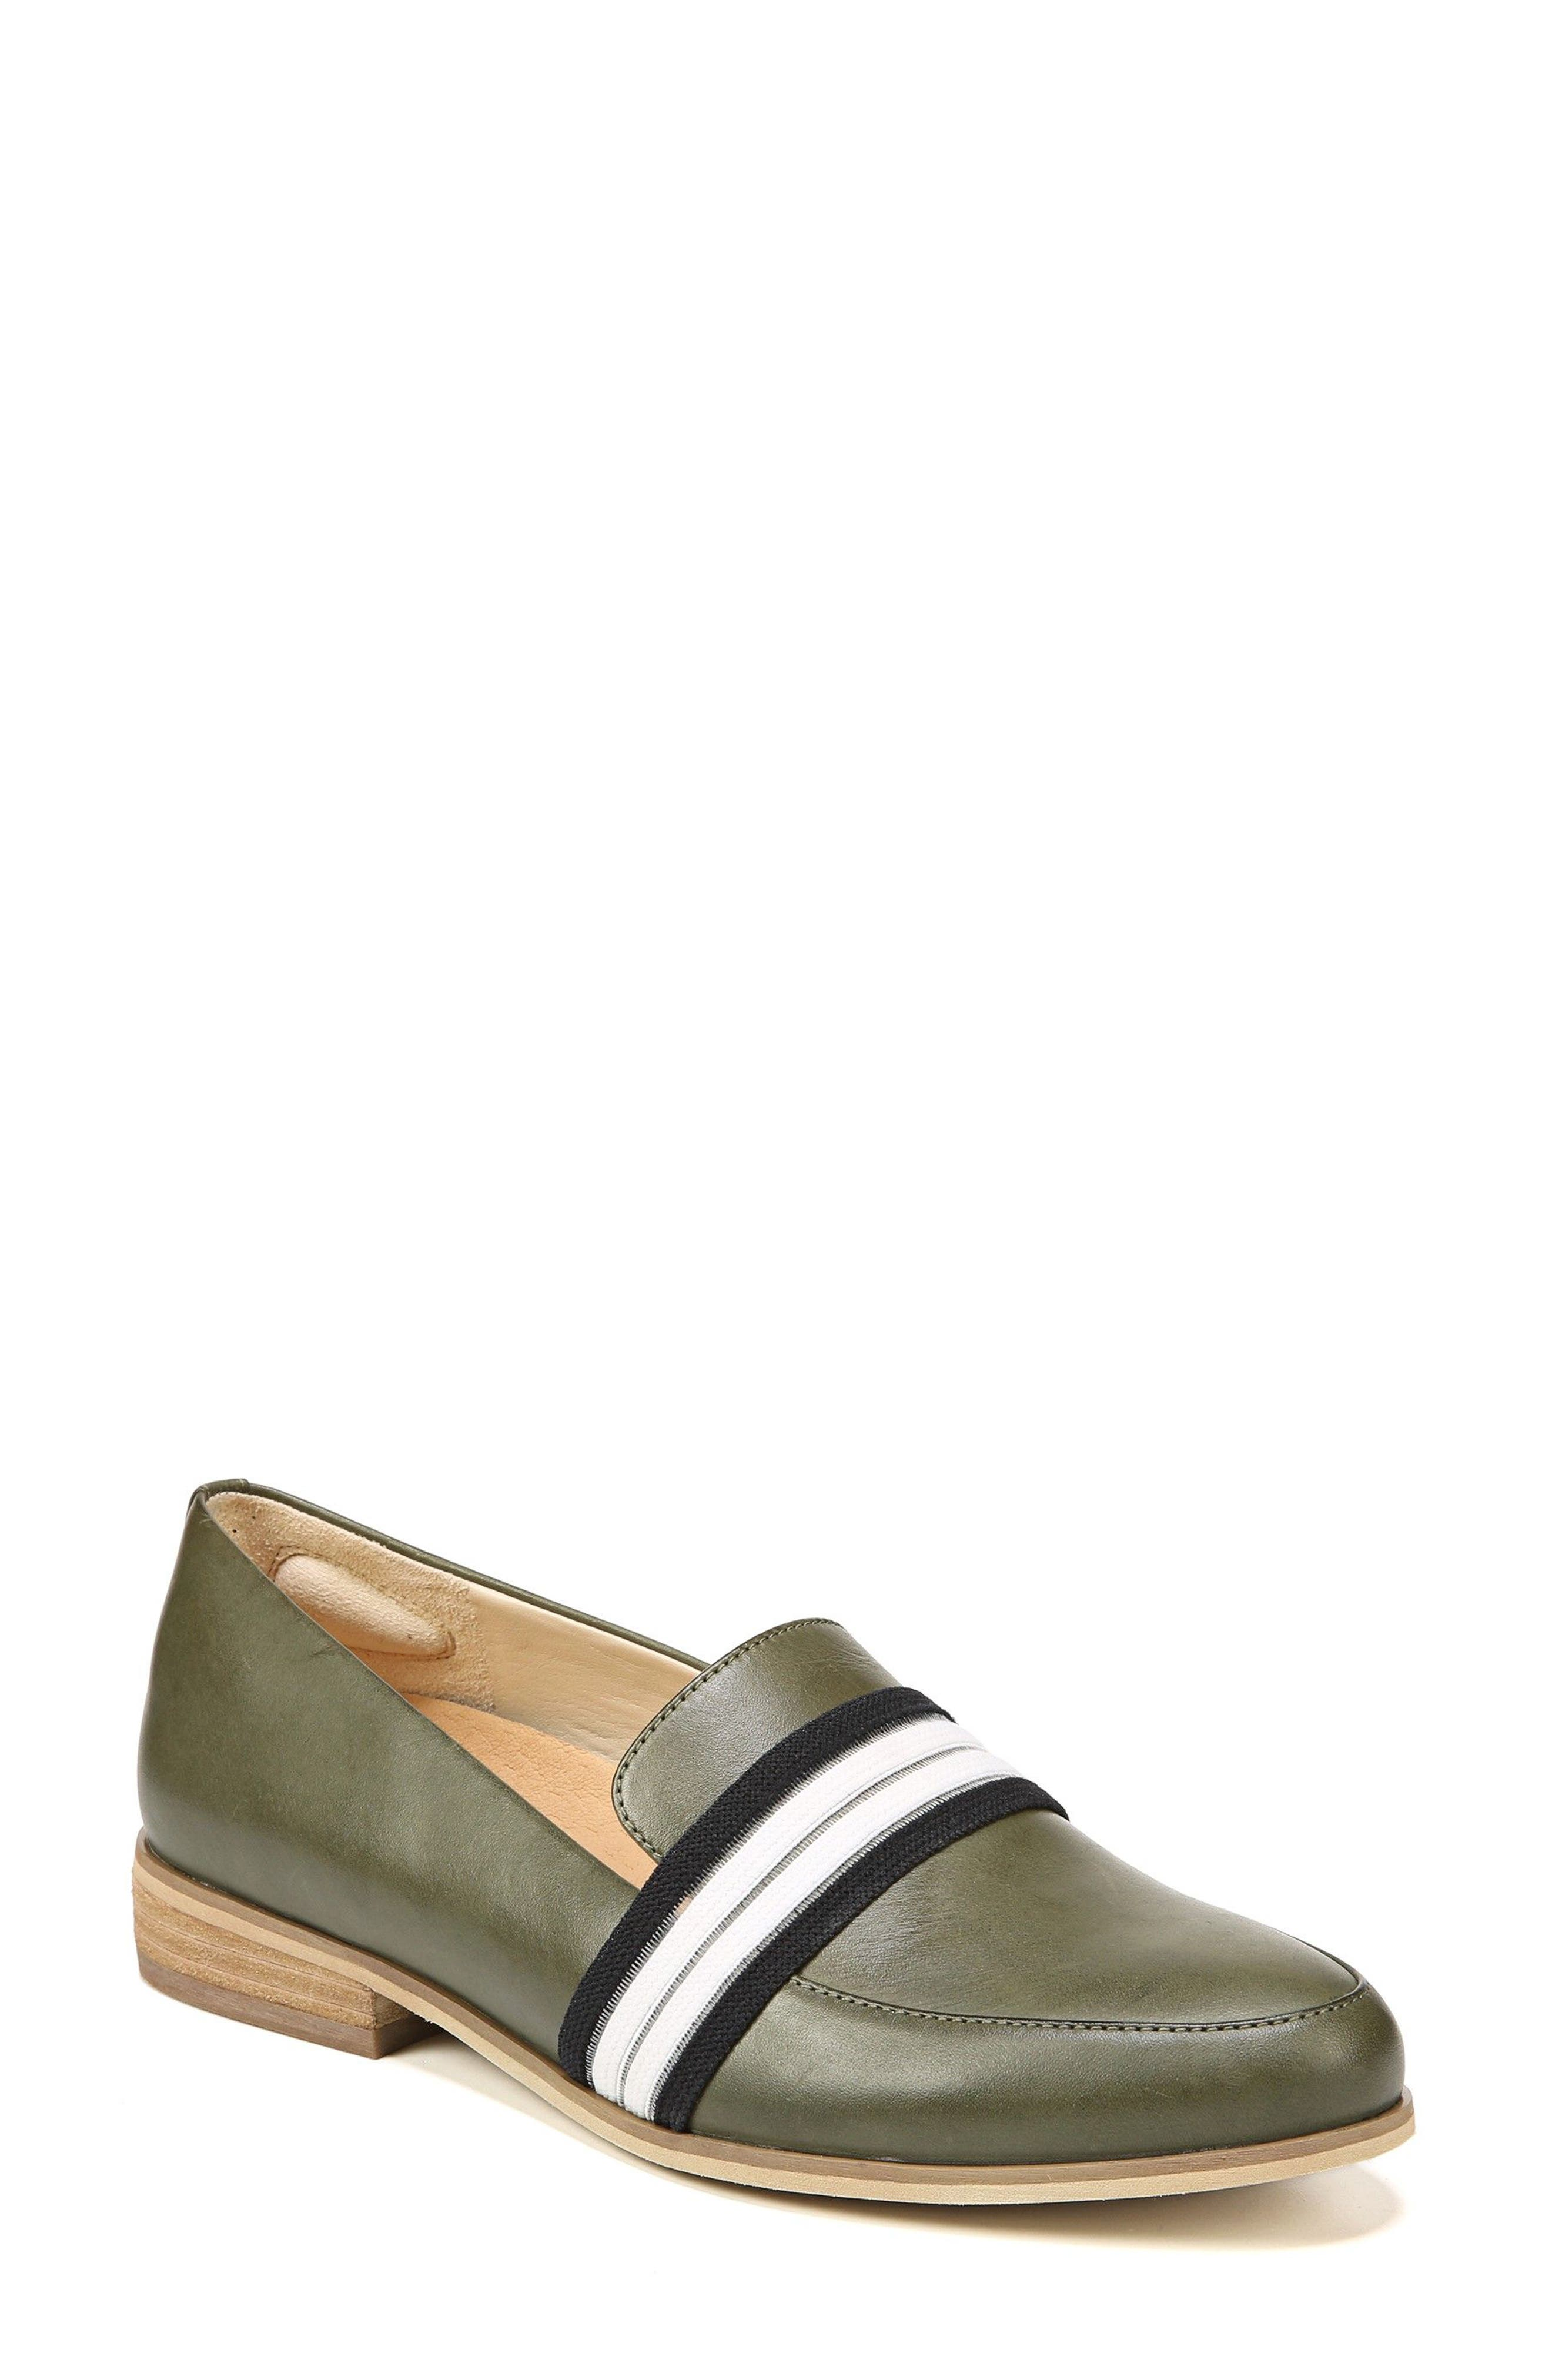 Everett Band Loafer,                         Main,                         color, Green Leather